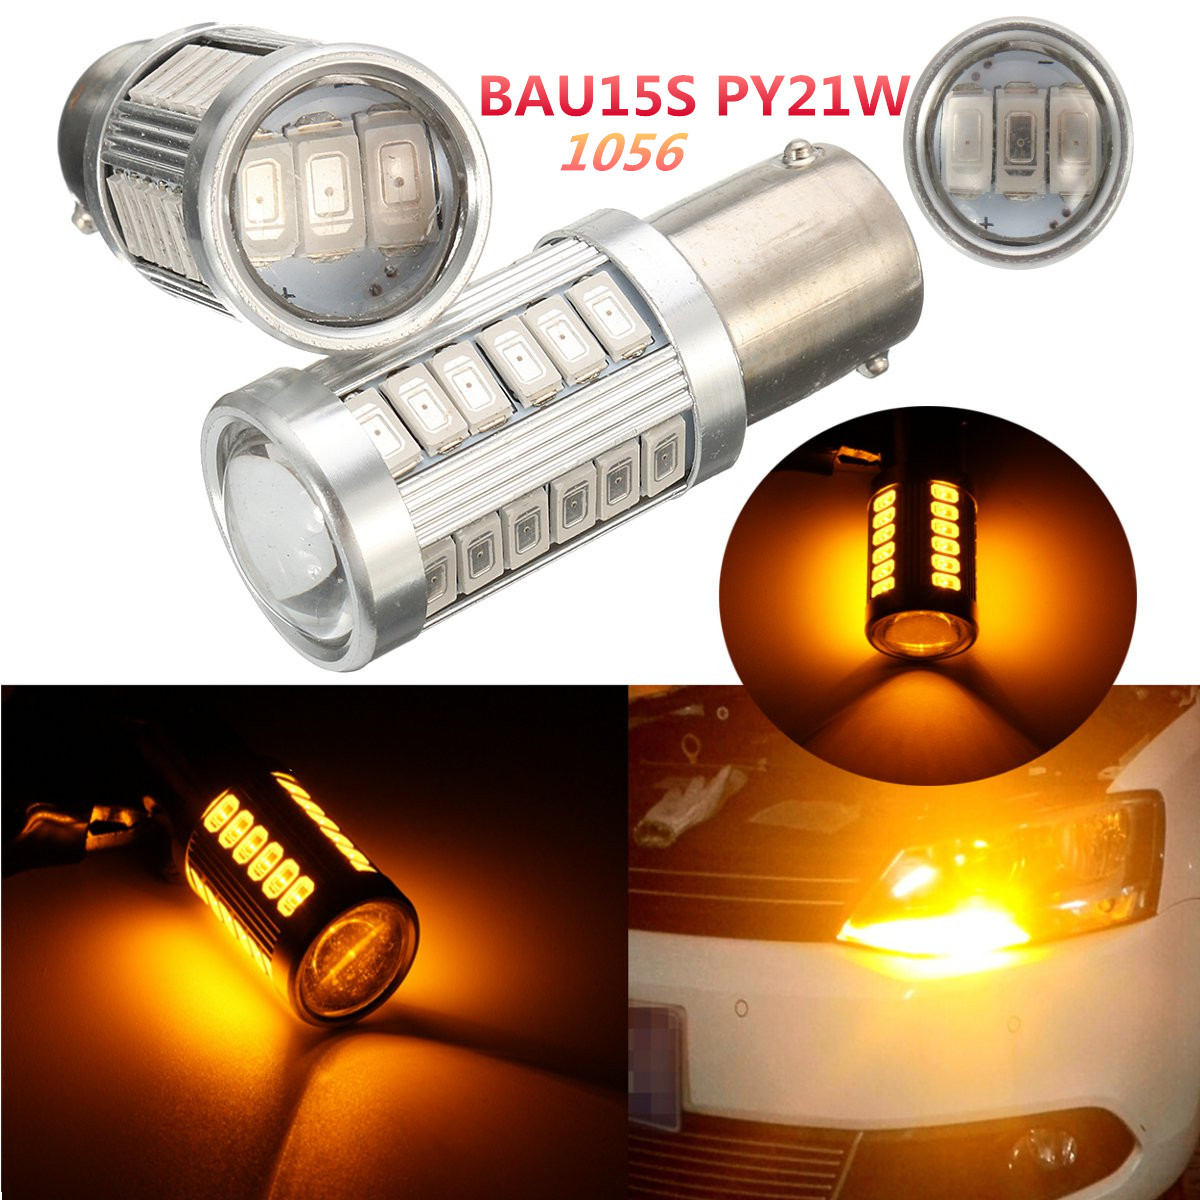 2pcs 33 SMD 5630 Amber 1156 PY21W Parking Lamp Brake Turn Signal Lights BAU15S33 Tail Parking Light Bulbs2pcs 33 SMD 5630 Amber 1156 PY21W Parking Lamp Brake Turn Signal Lights BAU15S33 Tail Parking Light Bulbs